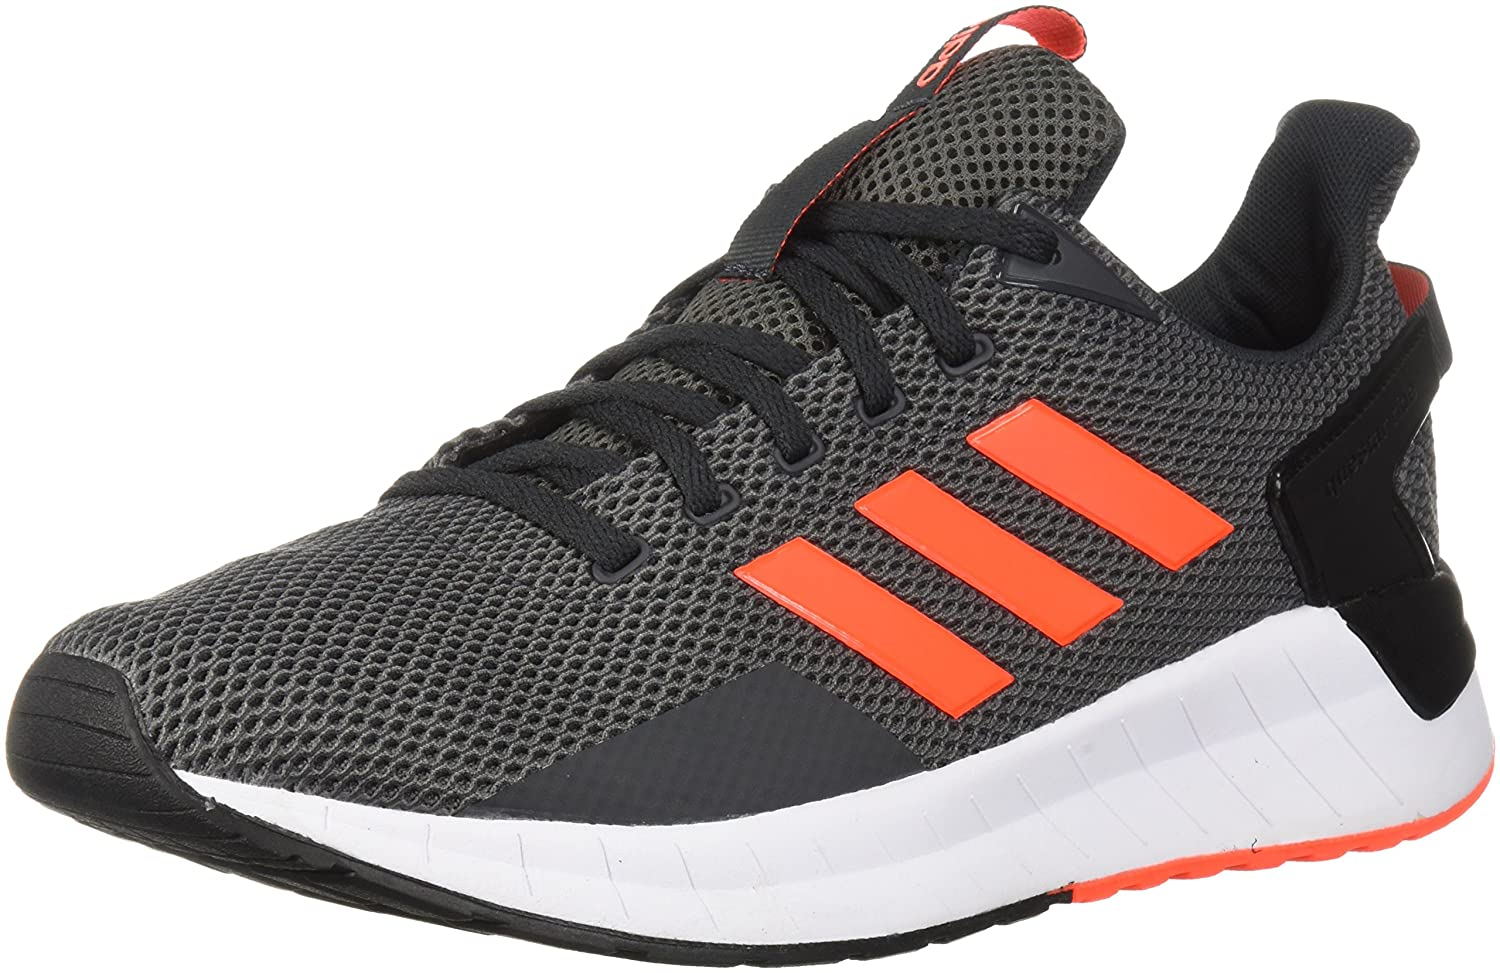 adidas Men's Questar Ride Running Shoe B072BW3P8D 10 D(M) US|Carbon/Solar Red/Grey Four